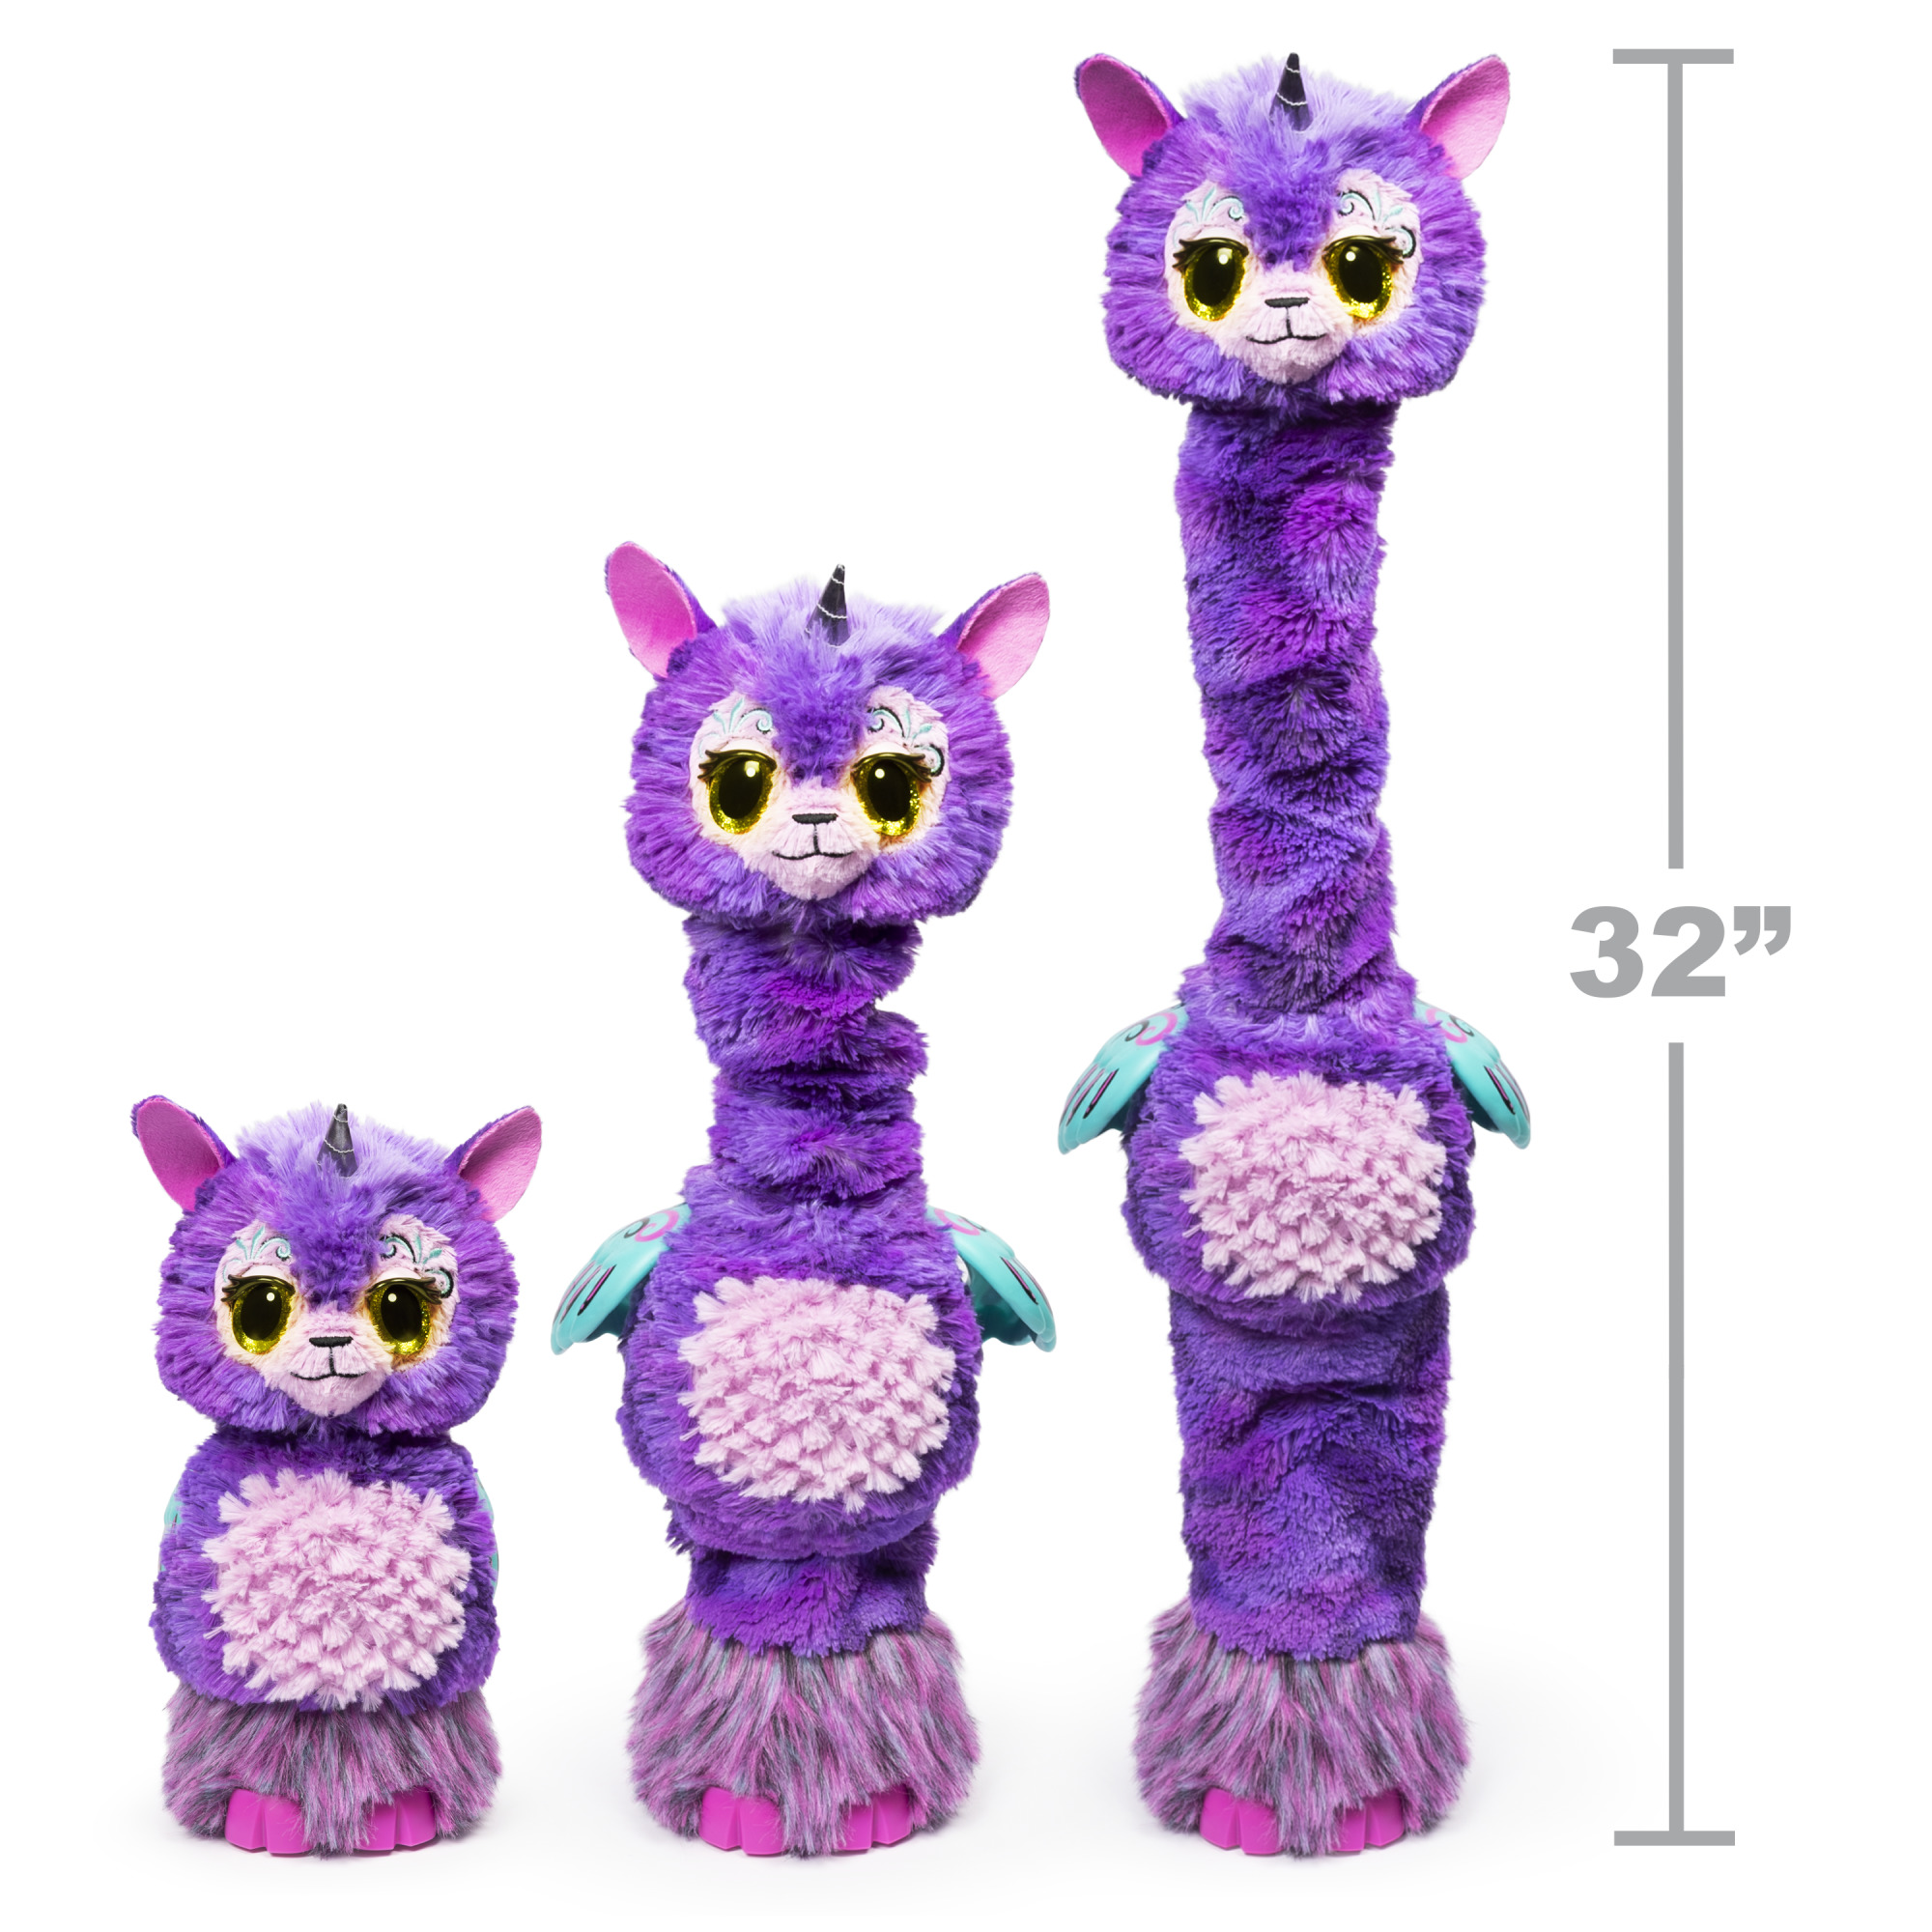 778988562239_20108325_Hatchimals Wow_Purple_GBL_Product_20